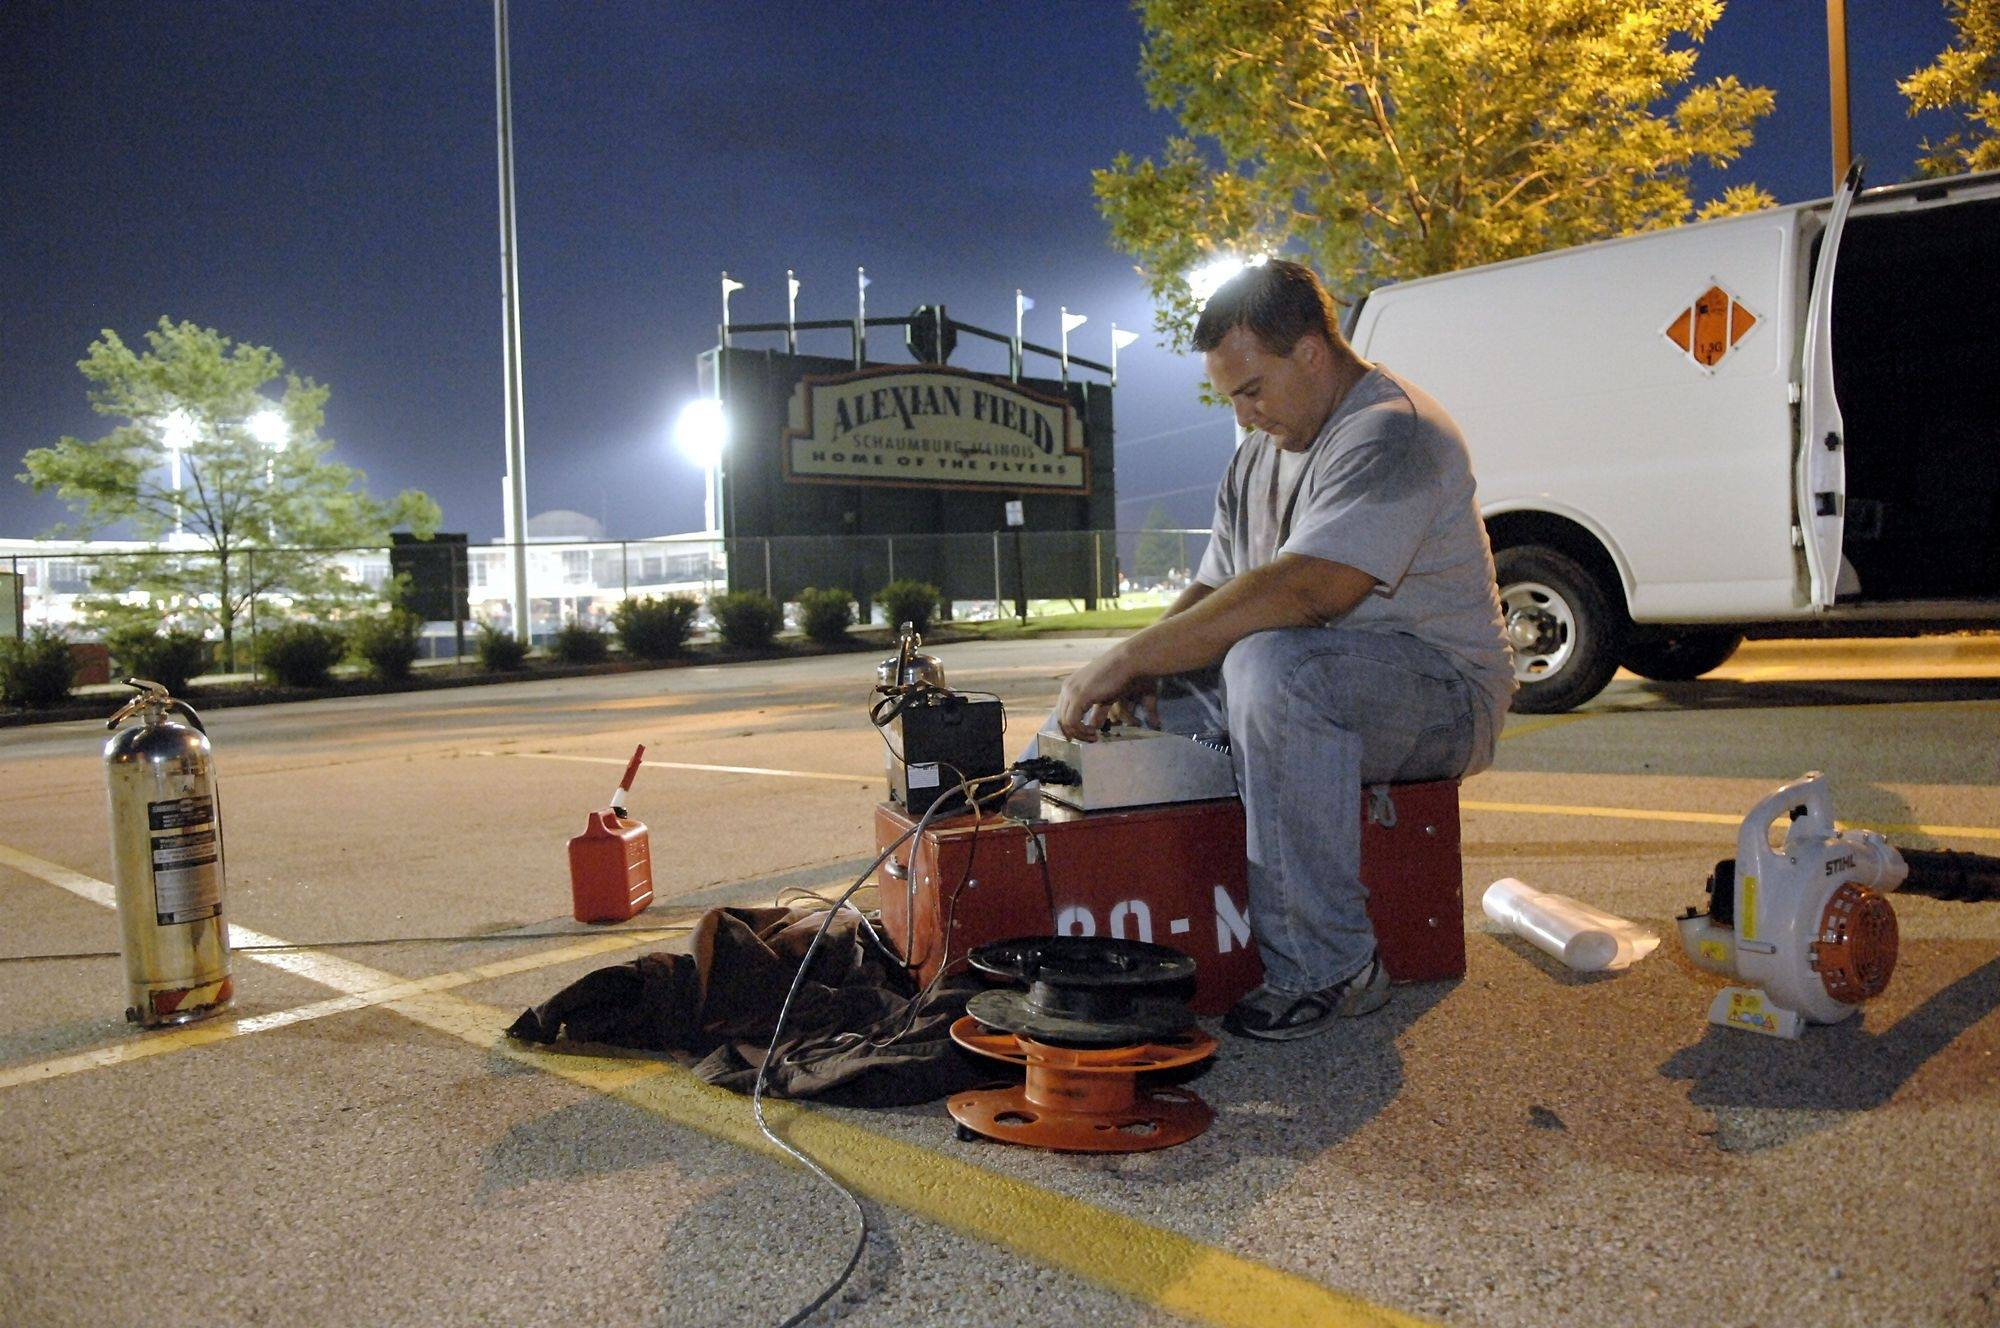 Don Miller, of Mad Bomber Fireworks Productions in Elgin, readies the controls which will be used to ignite the special effects fireworks and finale using a 12 volt battery circuit, at a recent Schaumburg Flyers game.